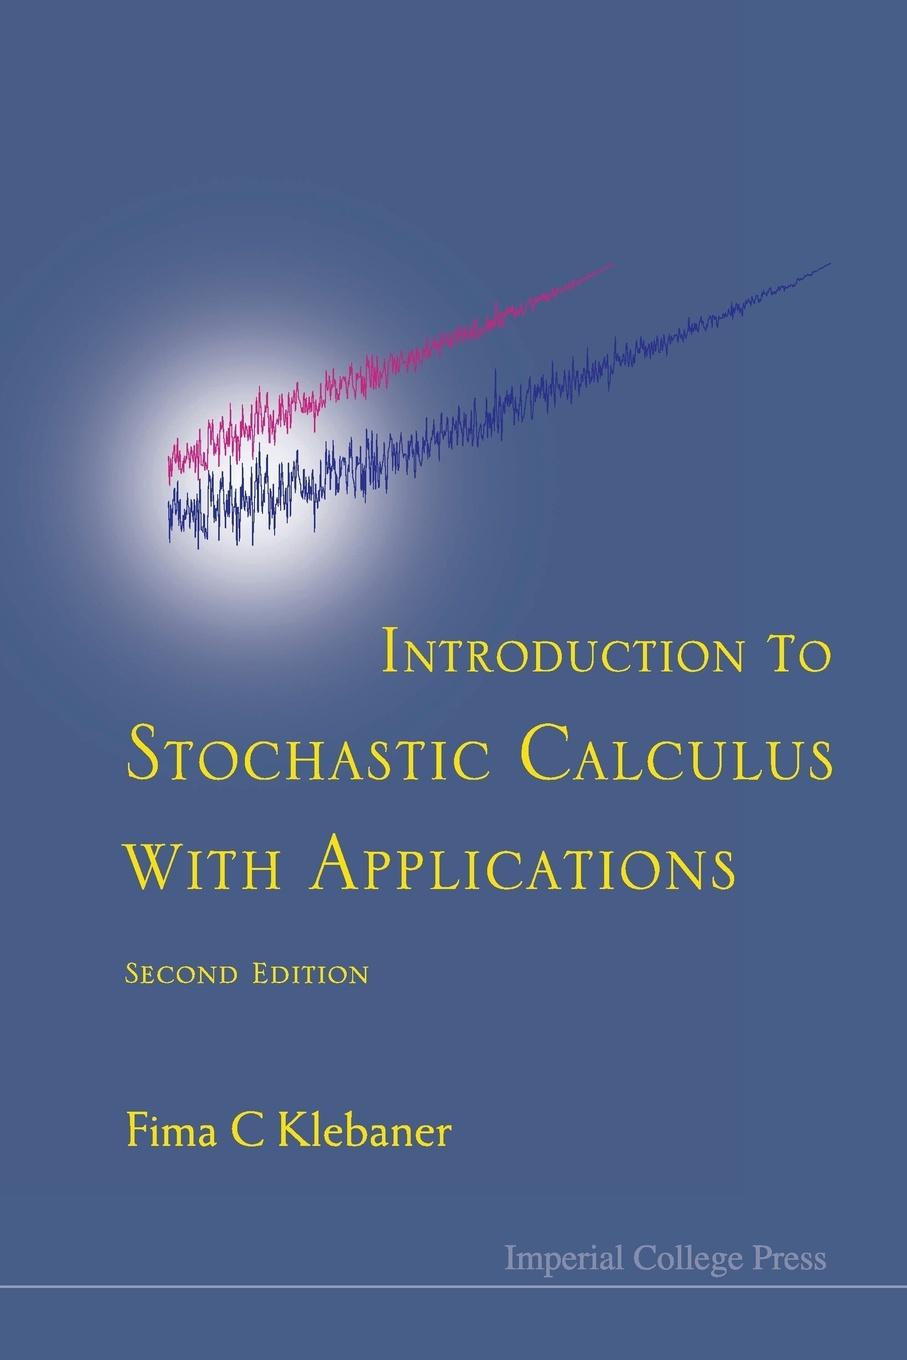 Fima C. Klebaner Introduction to Stochastic Calculus with Applications (2nd Edition)